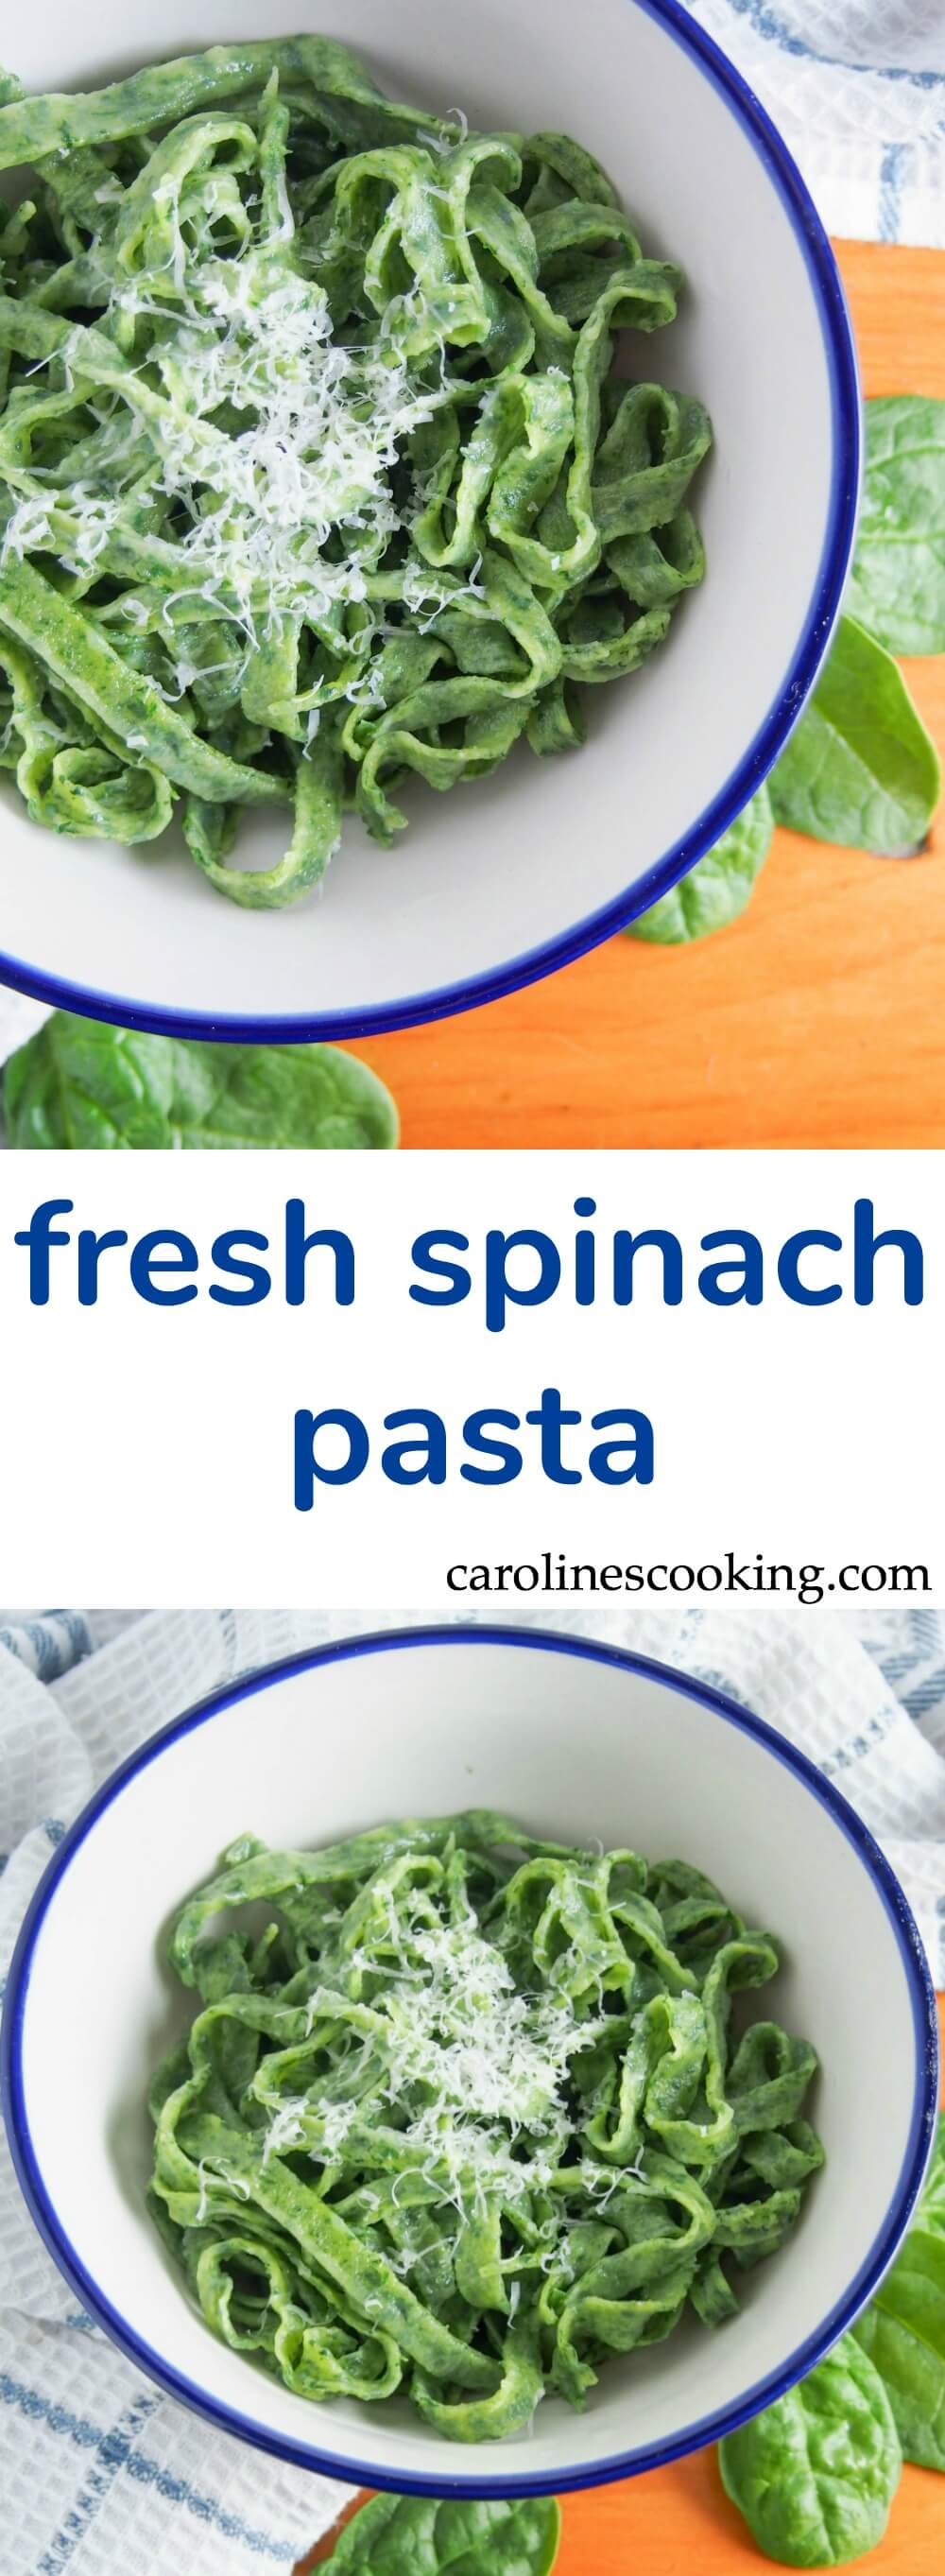 Fresh spinach pasta is easier than you might think and the result is so delicious. Try with a simple sauce/browned butter for a delicious meal.